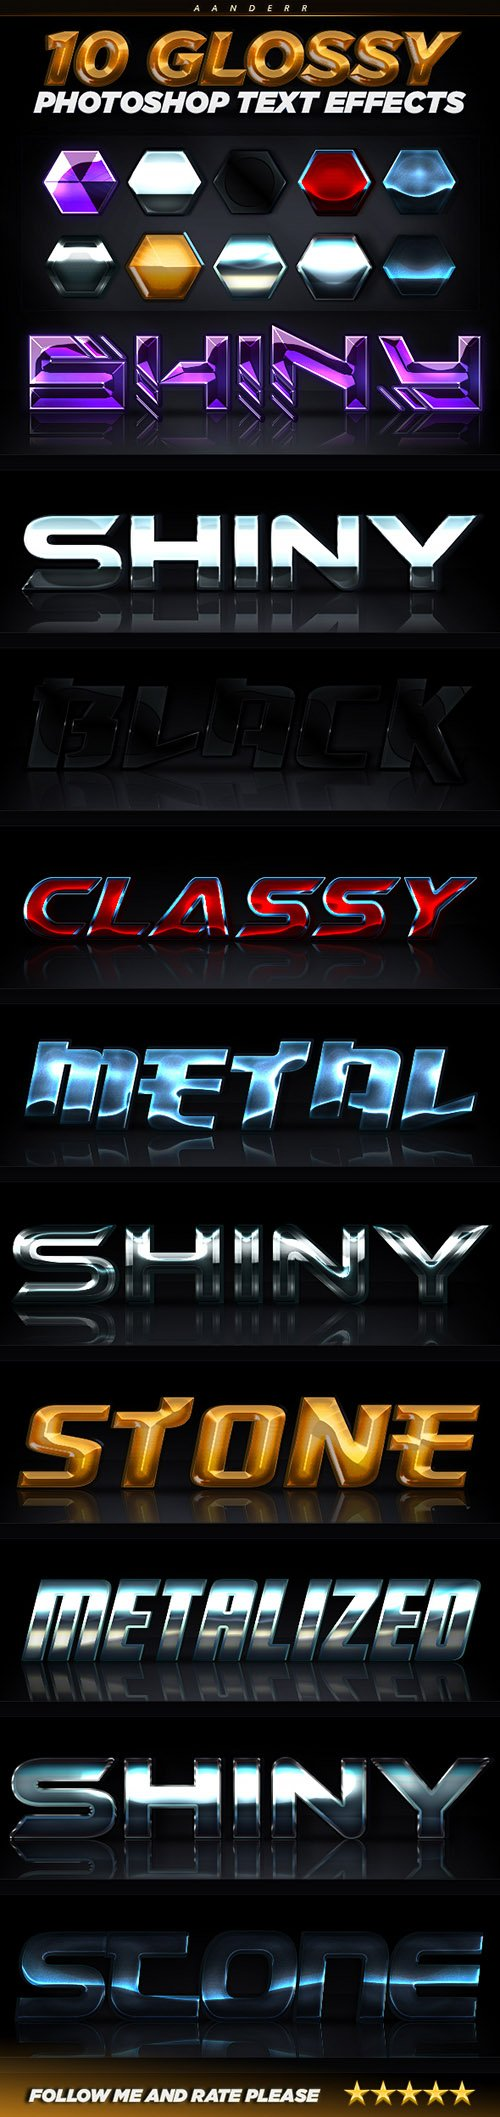 GraphicRiver - 10 Glossy Photoshop Text Effects 22885599